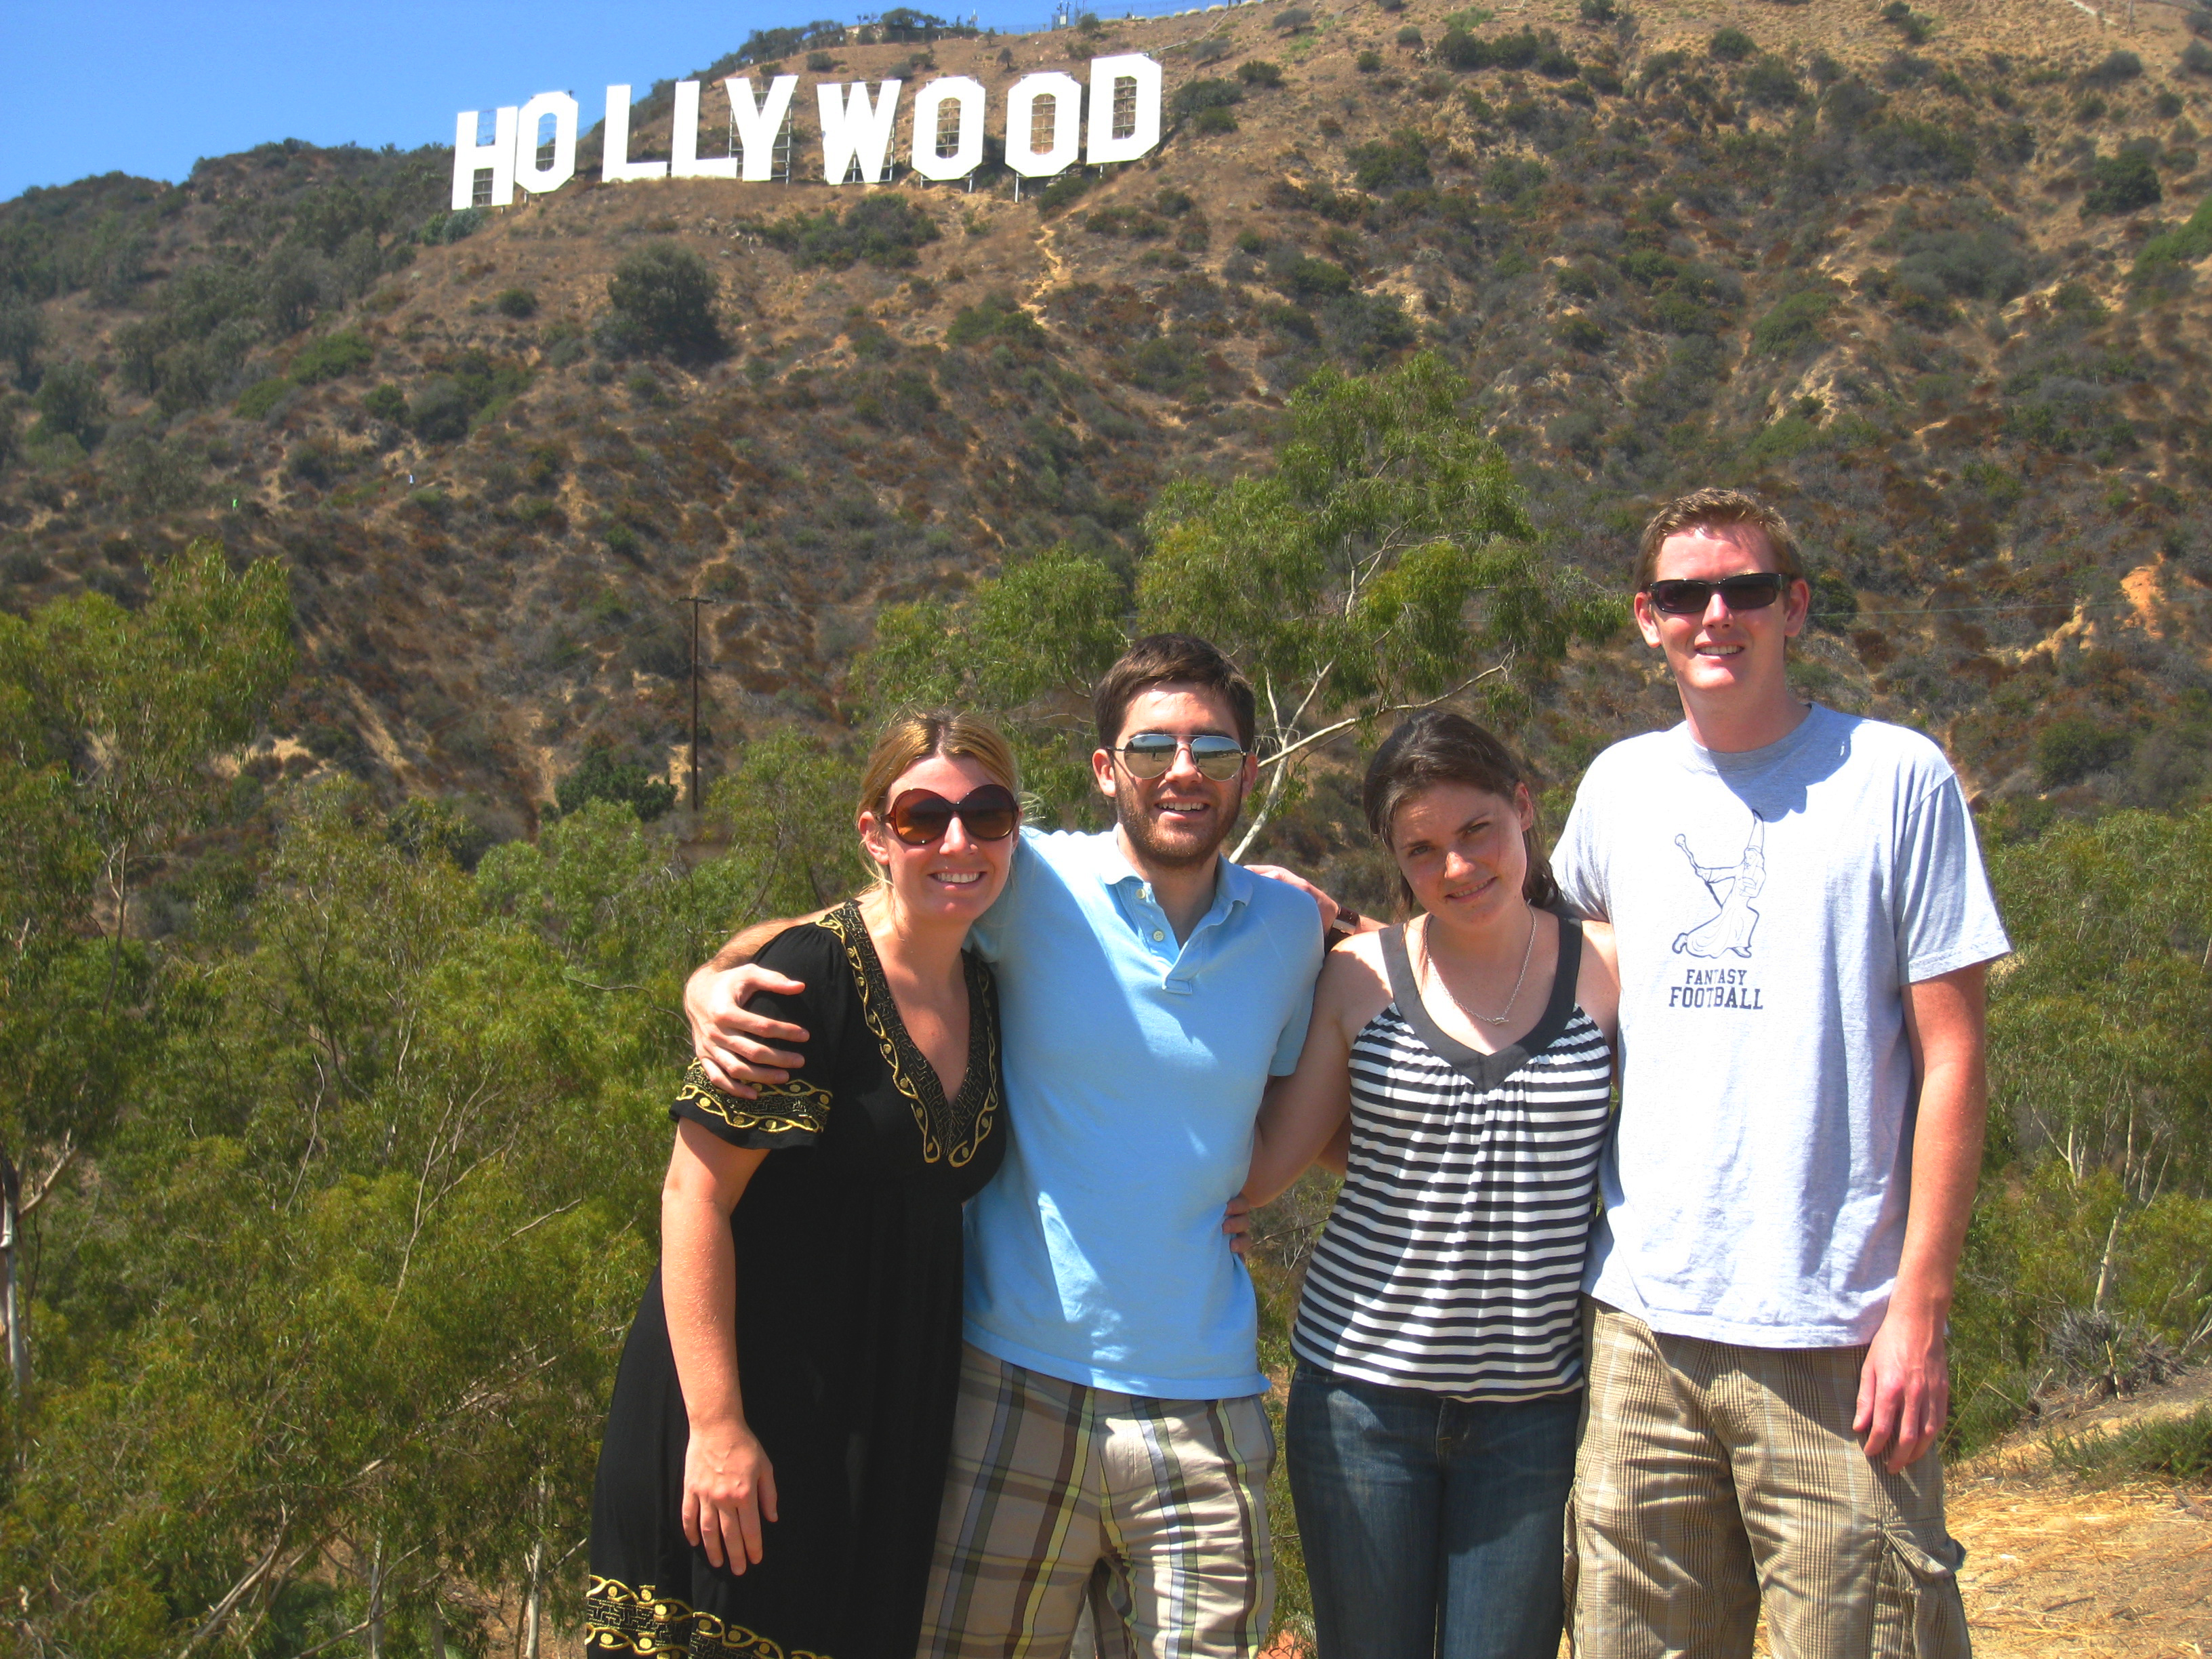 best places to see the hollywood sign